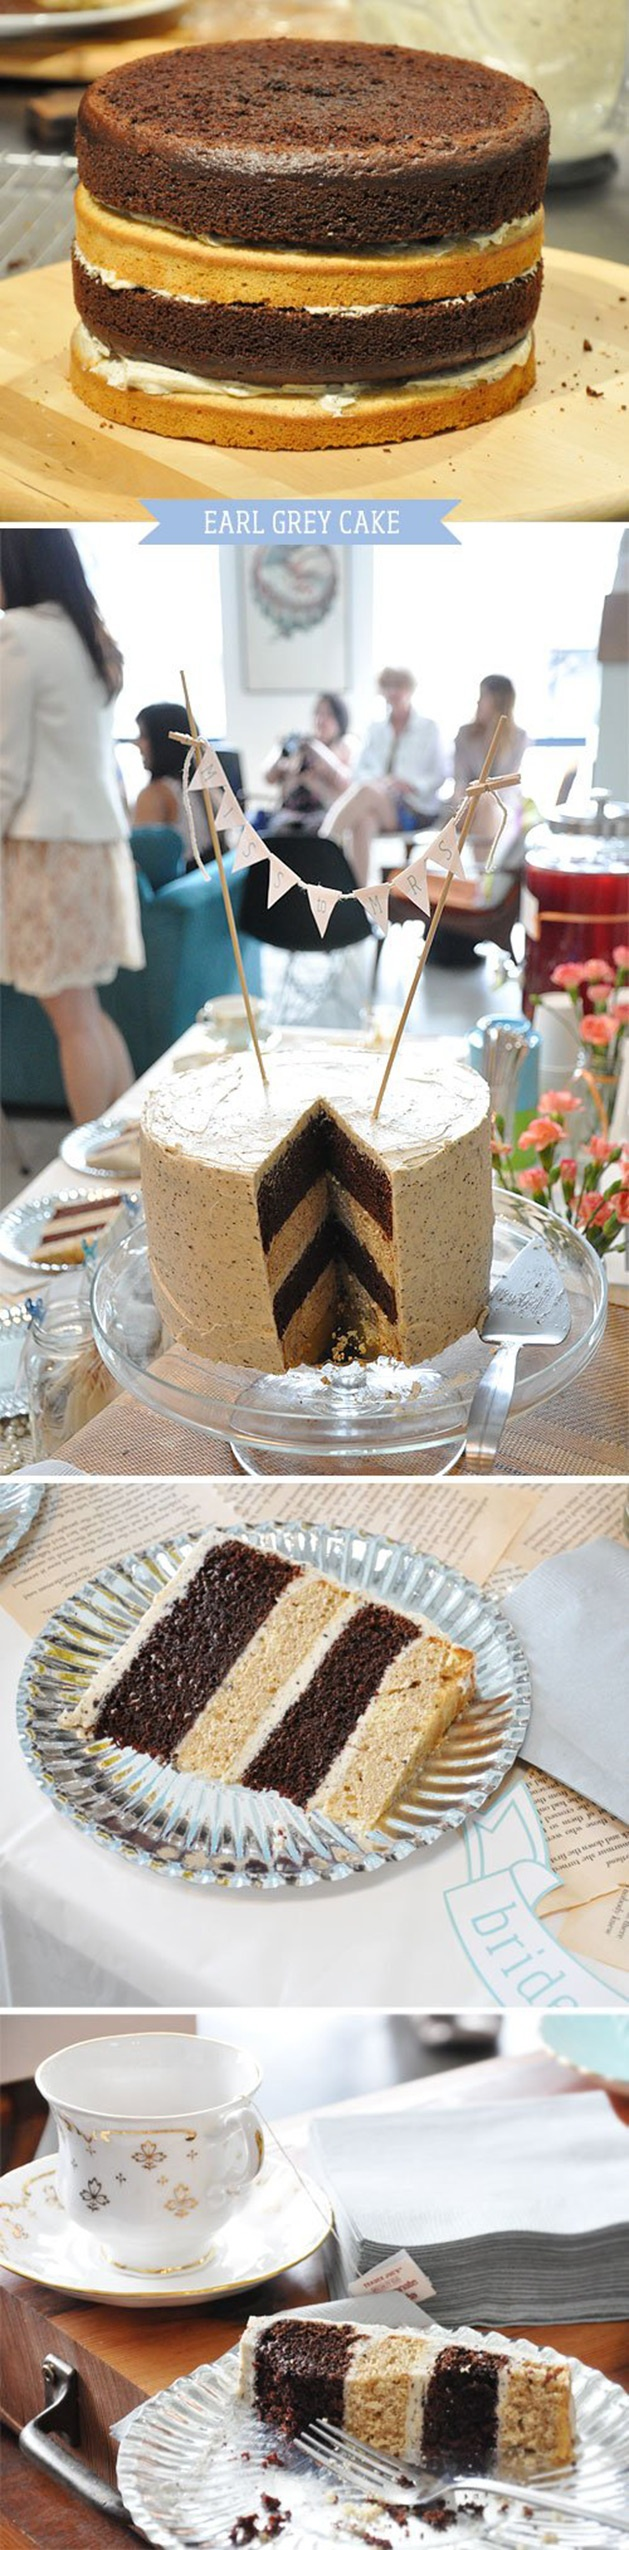 Earl Grey Cake http://twinings.co.uk/about-twinings/tea-recipes/earl-grey-cake-recipe